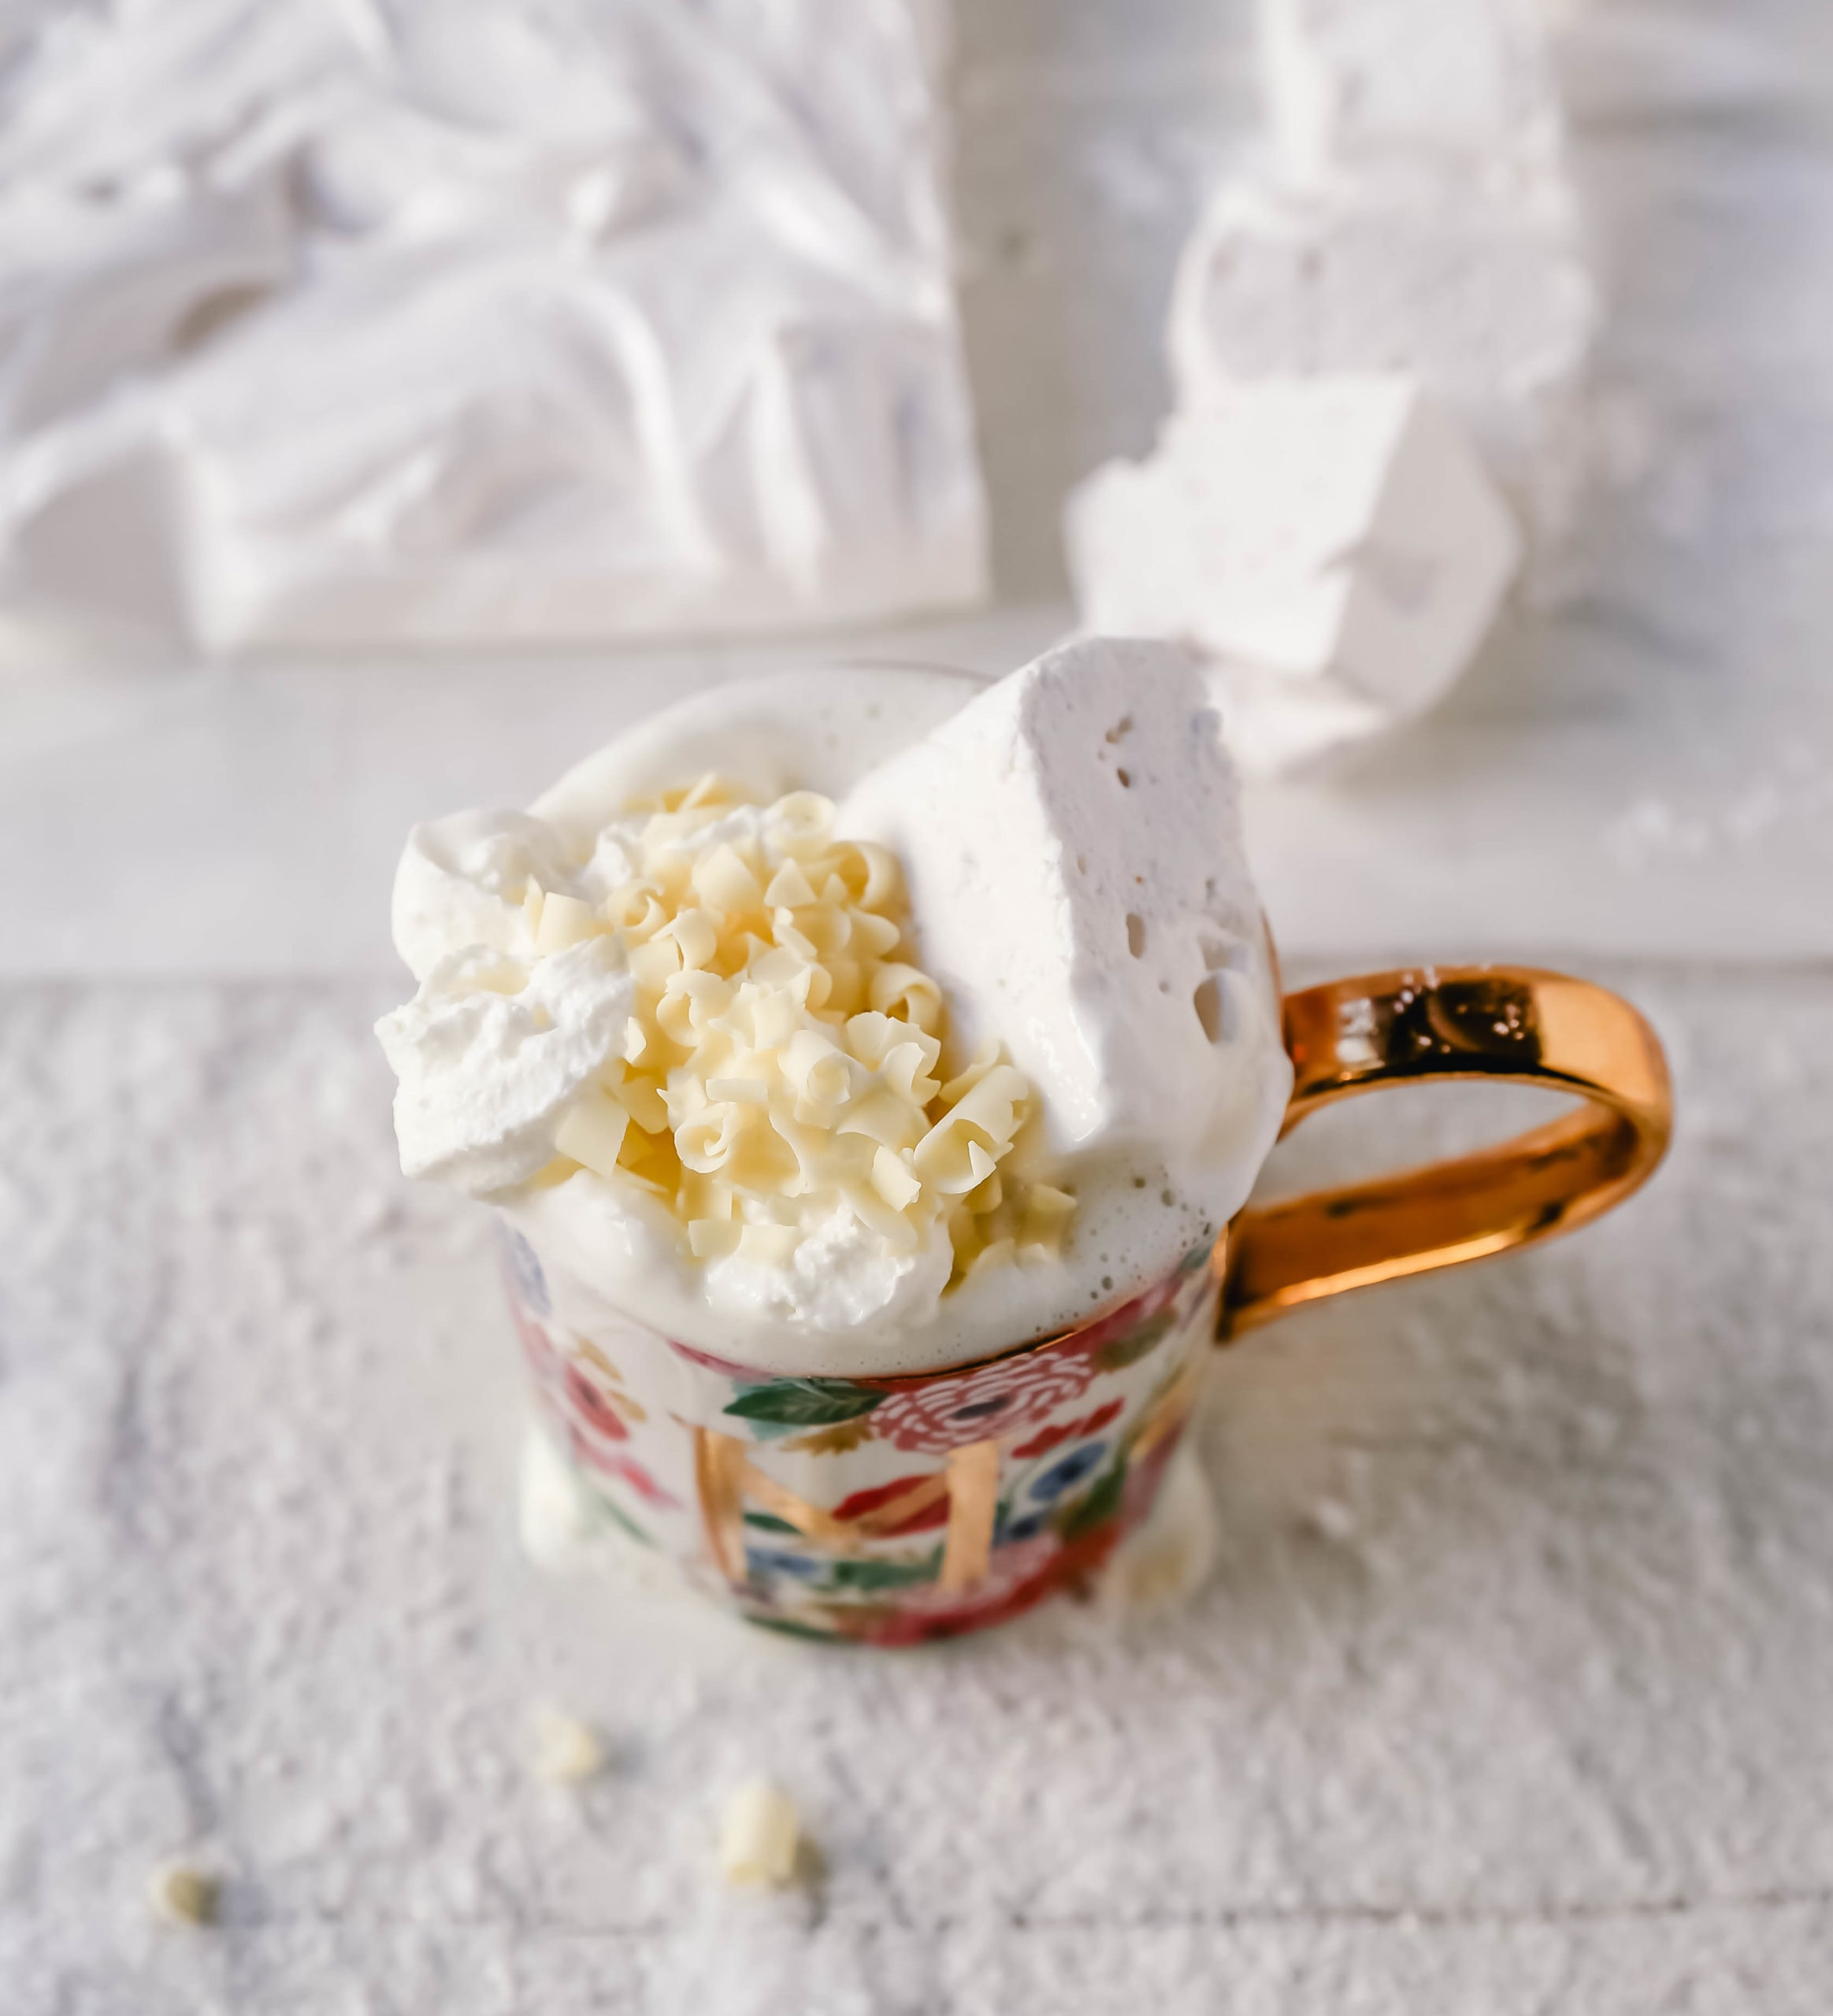 Homemade White Hot Chocolate Creamy, silky-smooth white chocolate made with white chocolate, whole milk, and vanilla beans. Topped with fresh whipped cream, homemade soft marshmallows, and white chocolate shavings. www.modernhoney.com #whitechocolate #hotwhitechocolate #whitehotchocolate